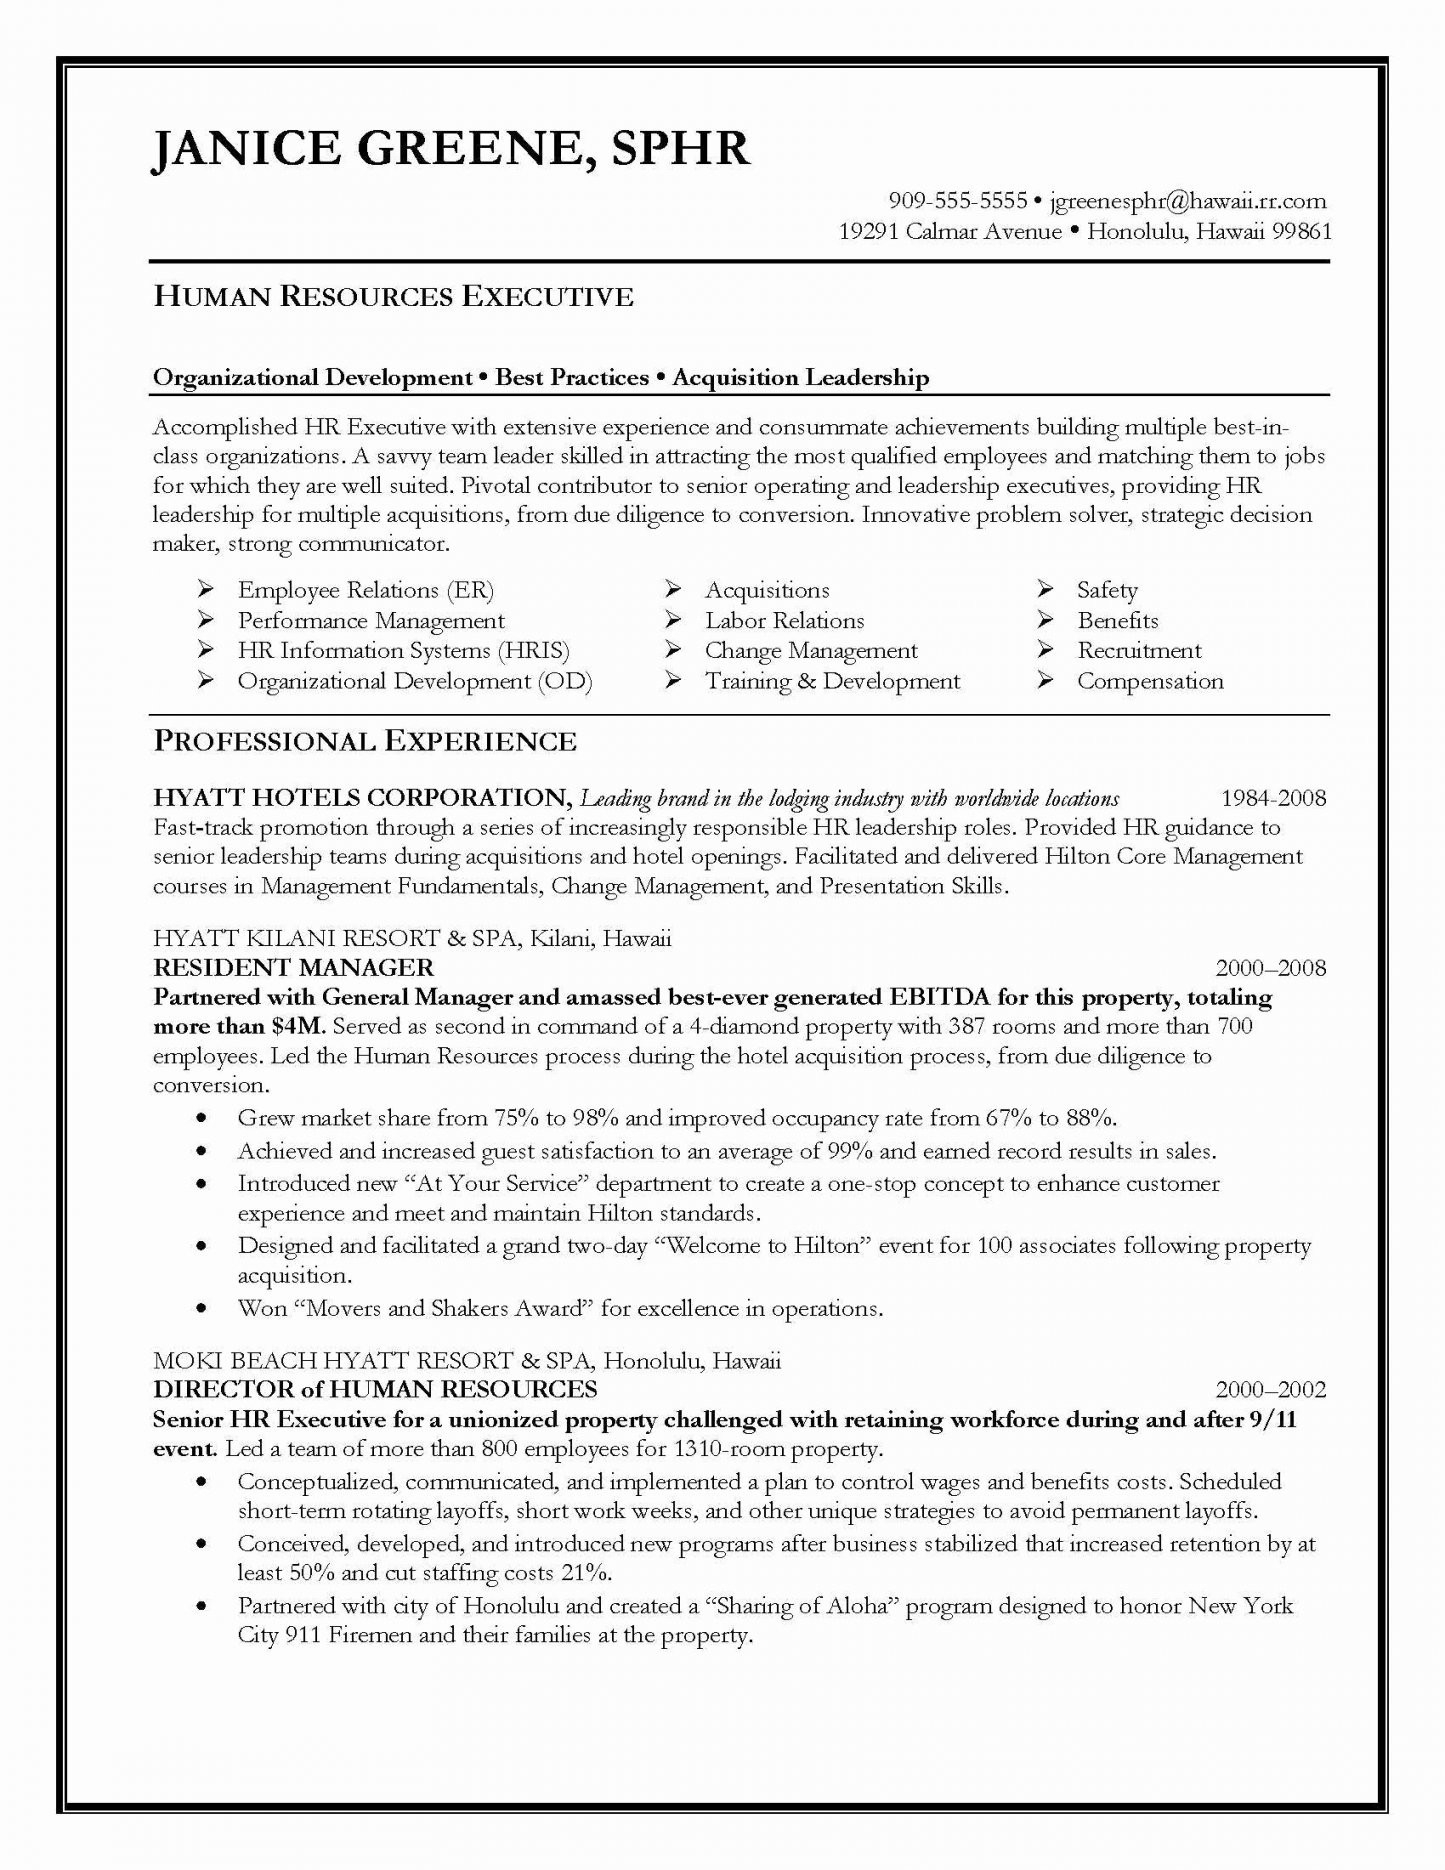 Professional association Of Resume Writers - 20 New Professional association Resume Writers